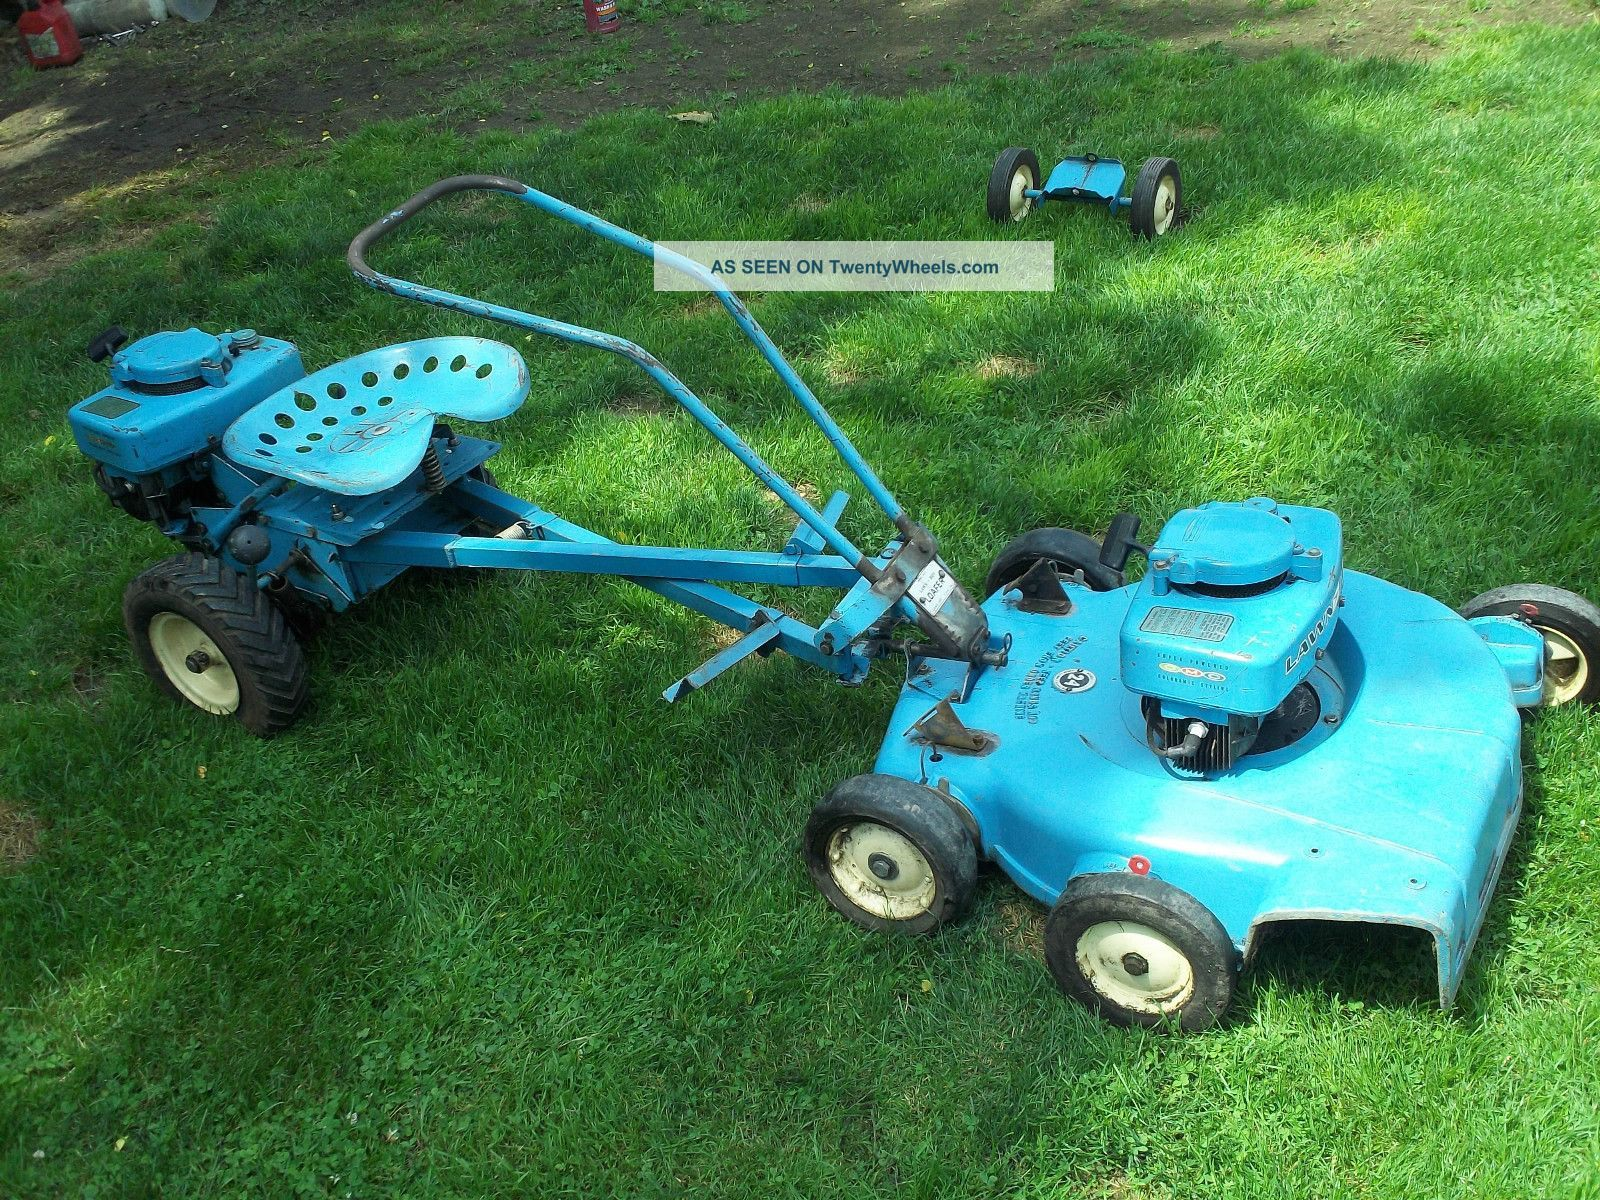 1962 Blue Lawn Boy Loafer Riding Lawn Mower Tractor Antique Vintage Tractors Lawn Mower Lawn Mower Tractor Und Riding Lawn Mowers